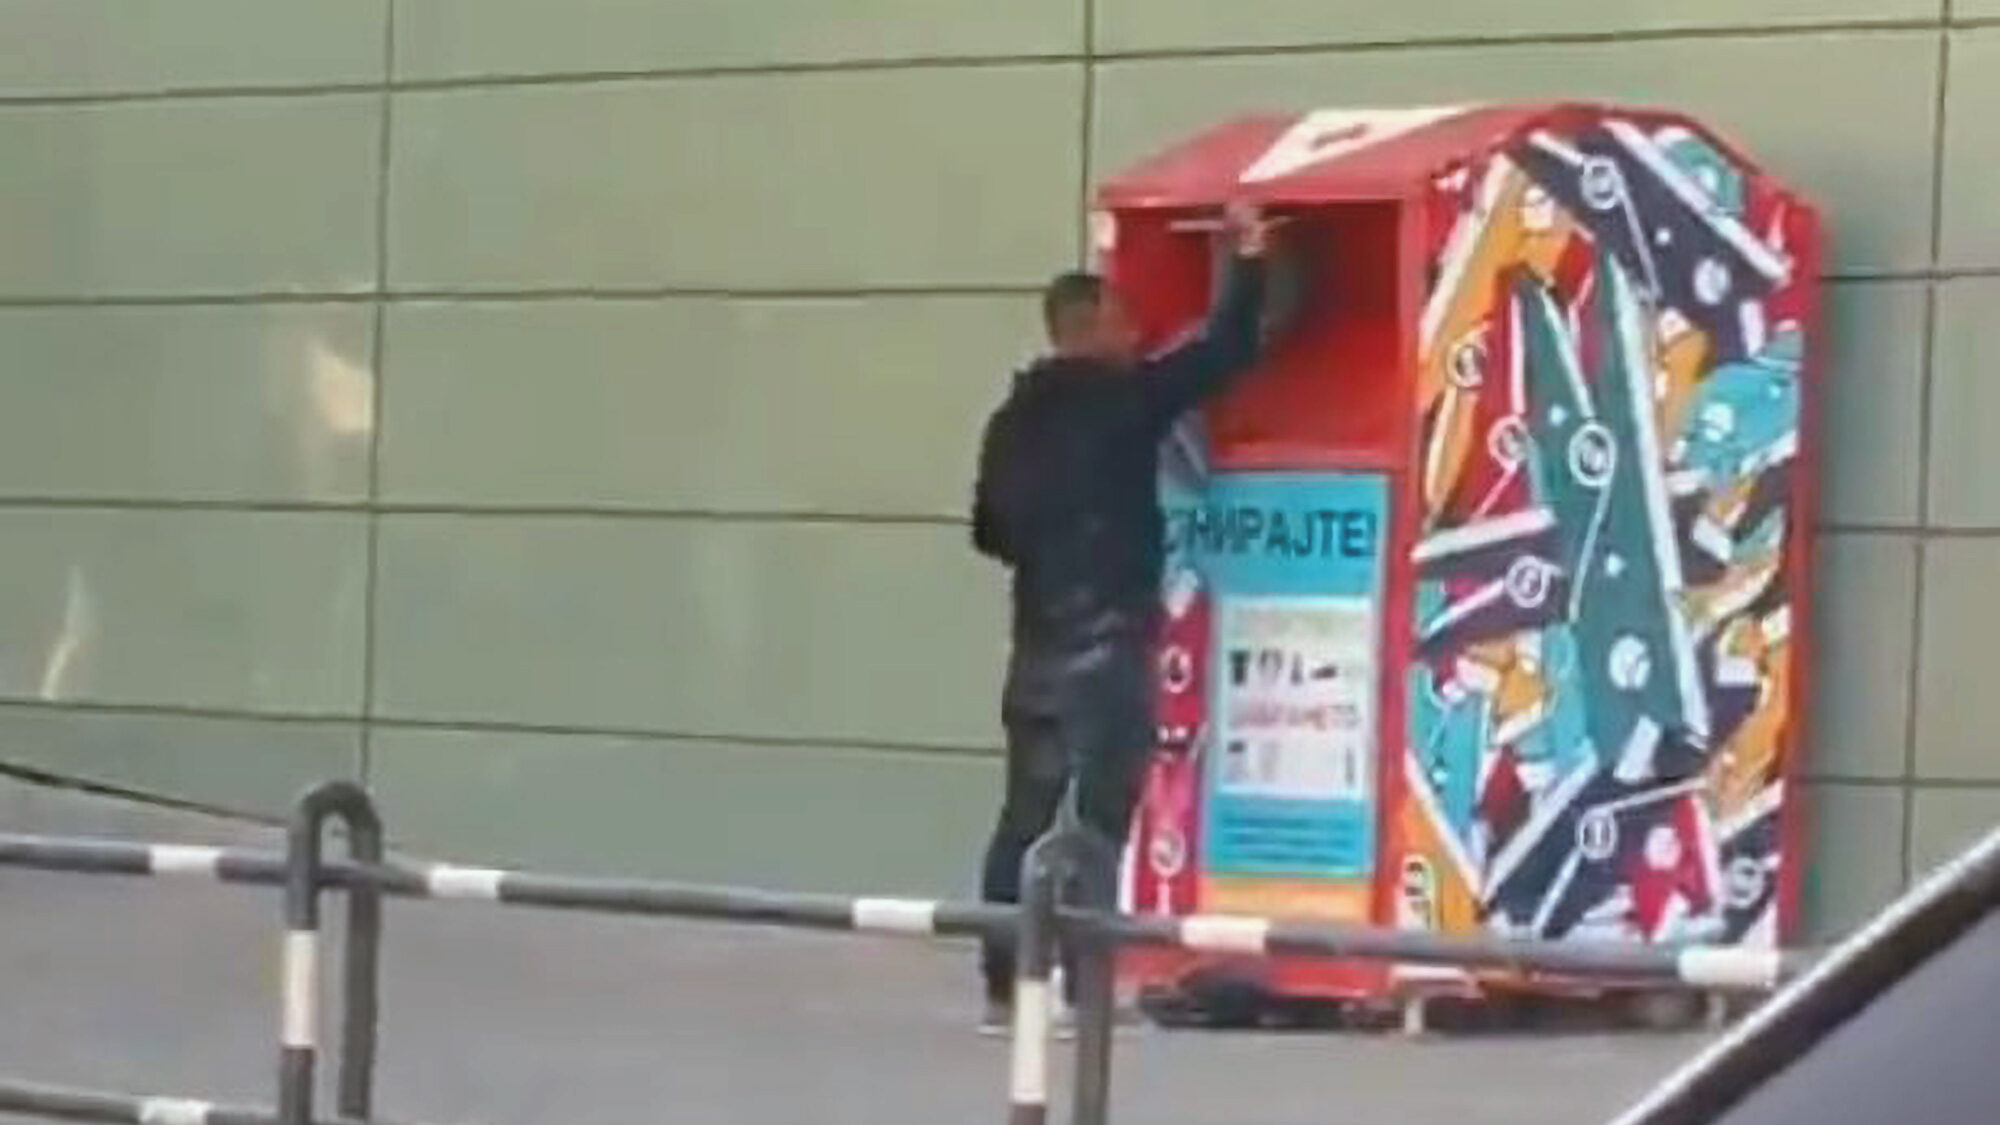 VIDEO: Self Service: Man Filmed Pushing Boy Into Charity Box For Needed Clothing